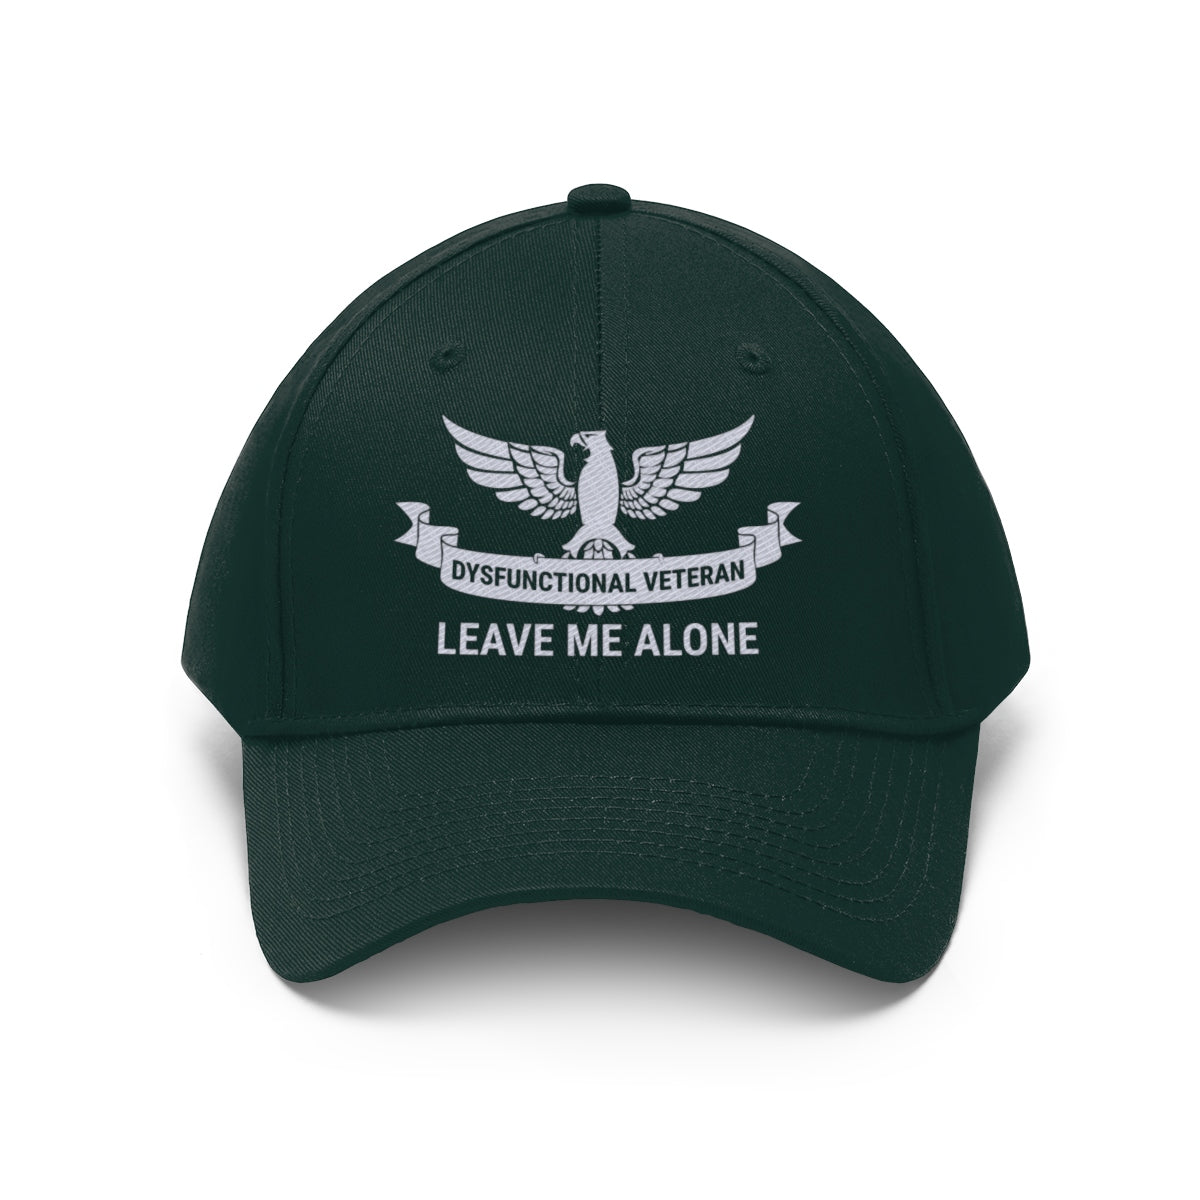 Dysfunctional Veteran - Leave Me Alone Twill Hat